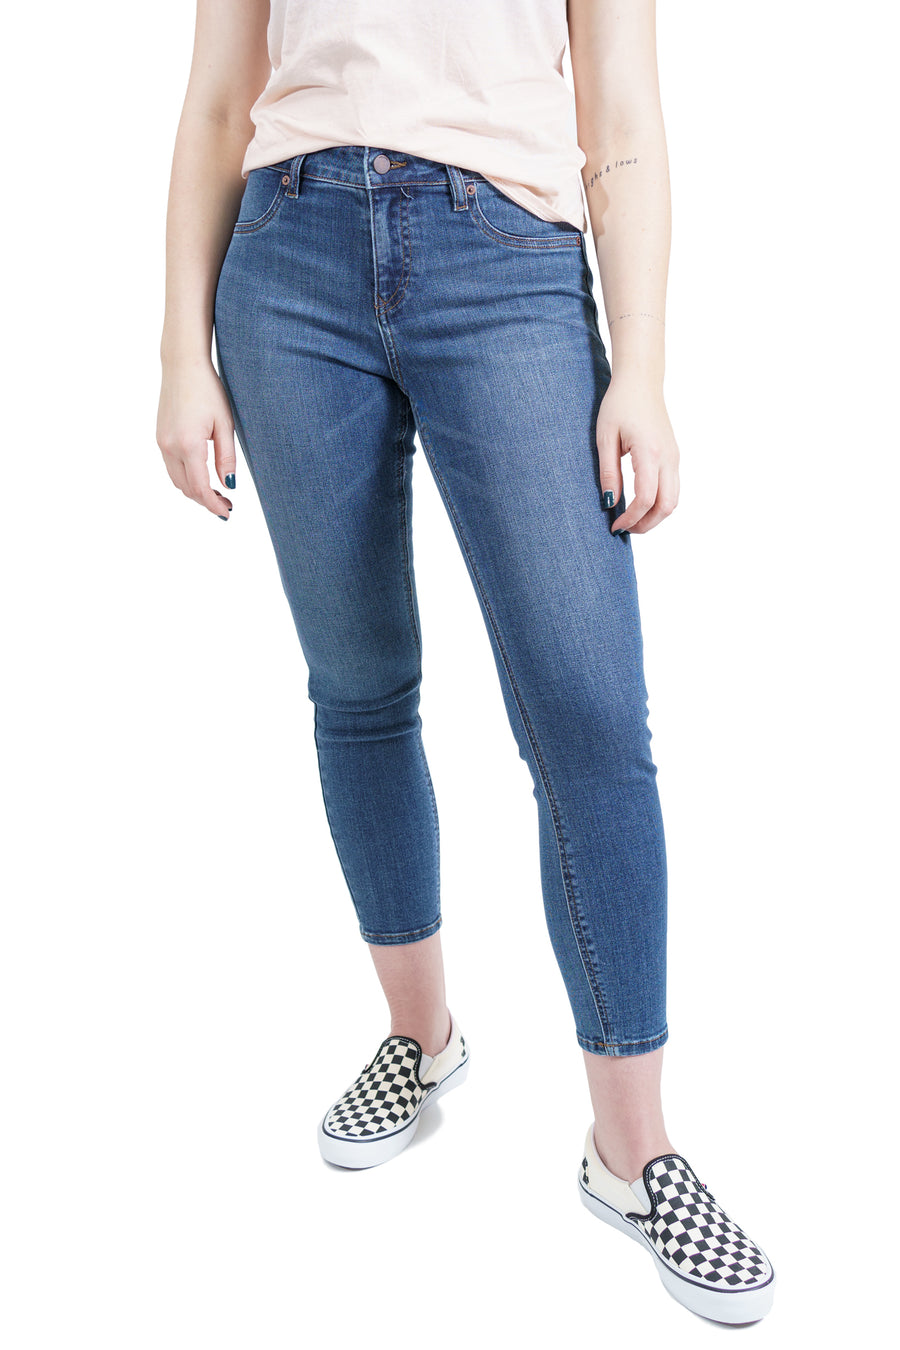 Volcom Liberator Leggings - Indigo Ridge Wash